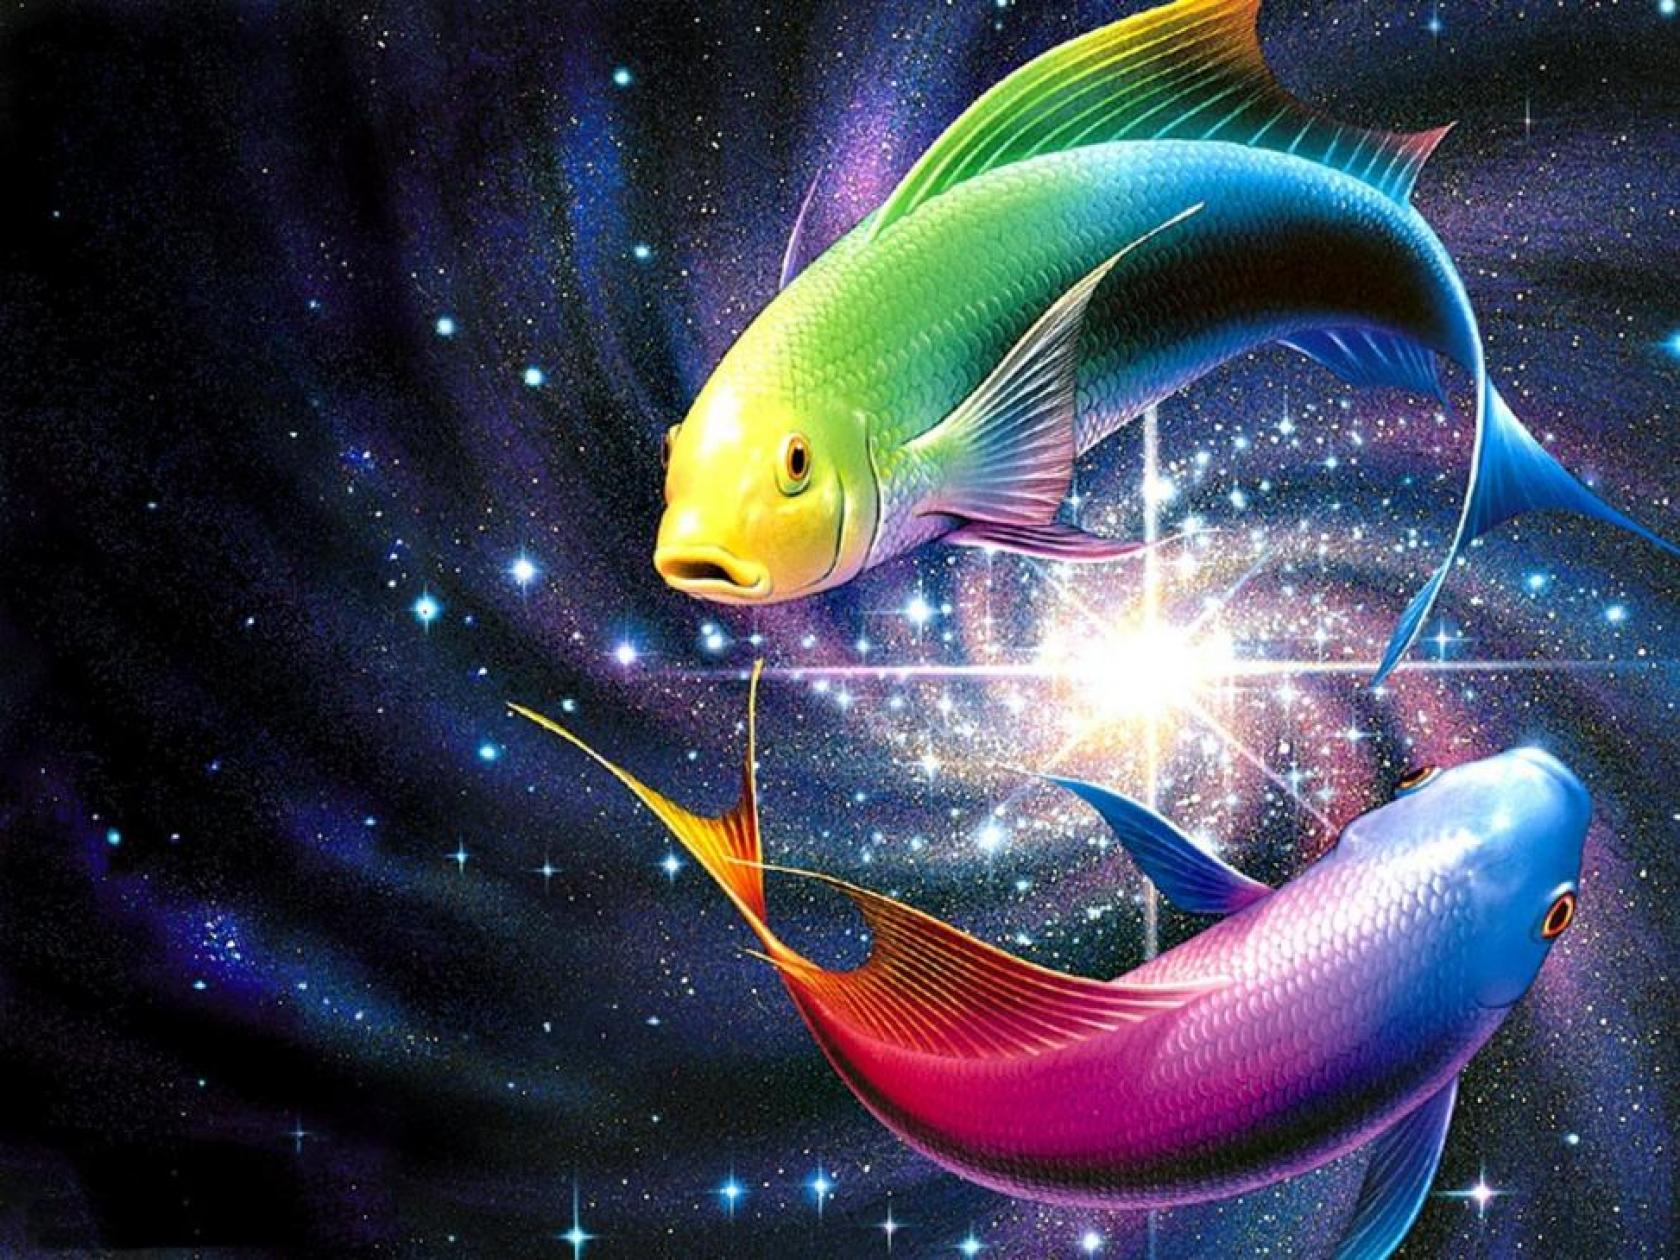 download-fish-wallpaper-fish-wallpaper-hd-download-ov-free-live-fish-full-hd-awesome-fish-backgrounds-wallpaper-wp40010507